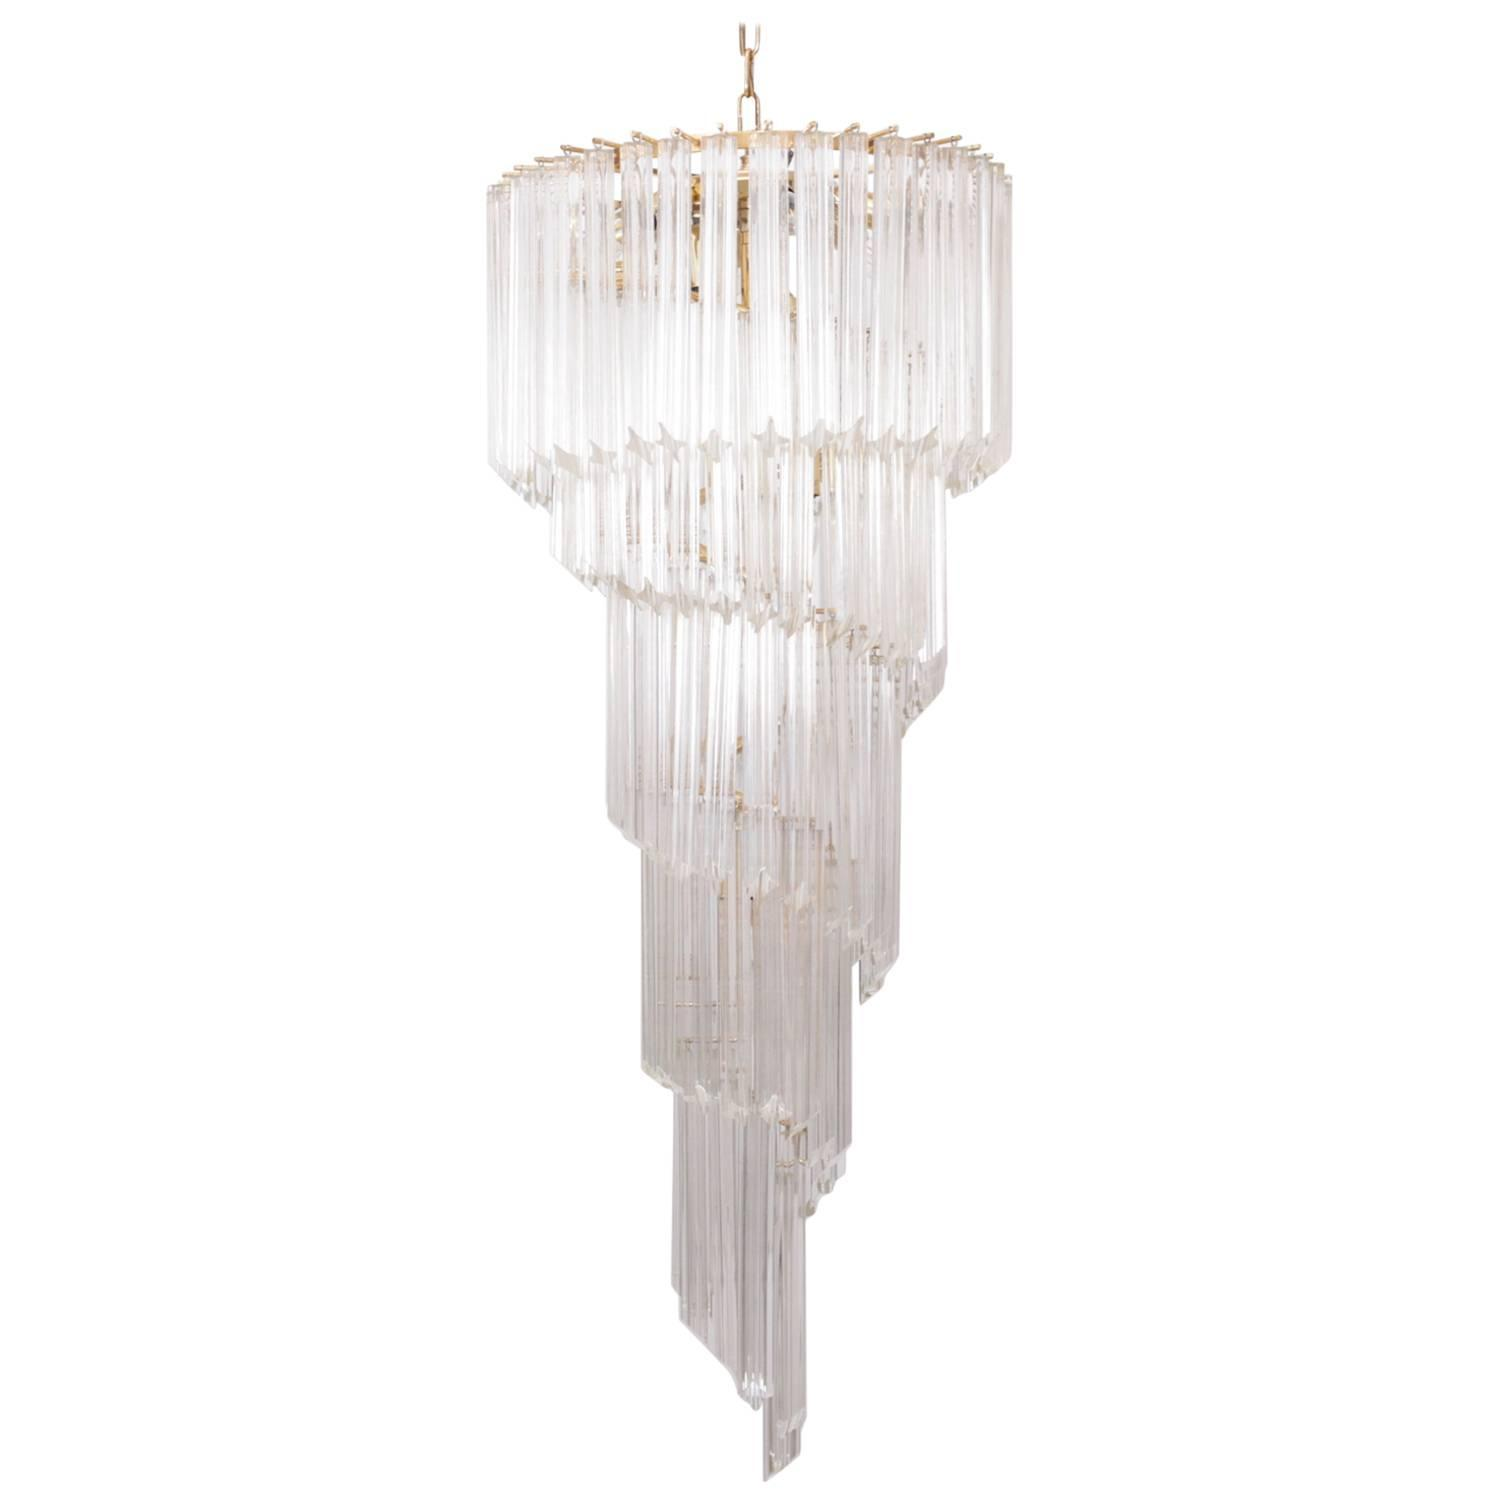 Very huge murano glass spiral chandelier by venini at 1stdibs aloadofball Image collections